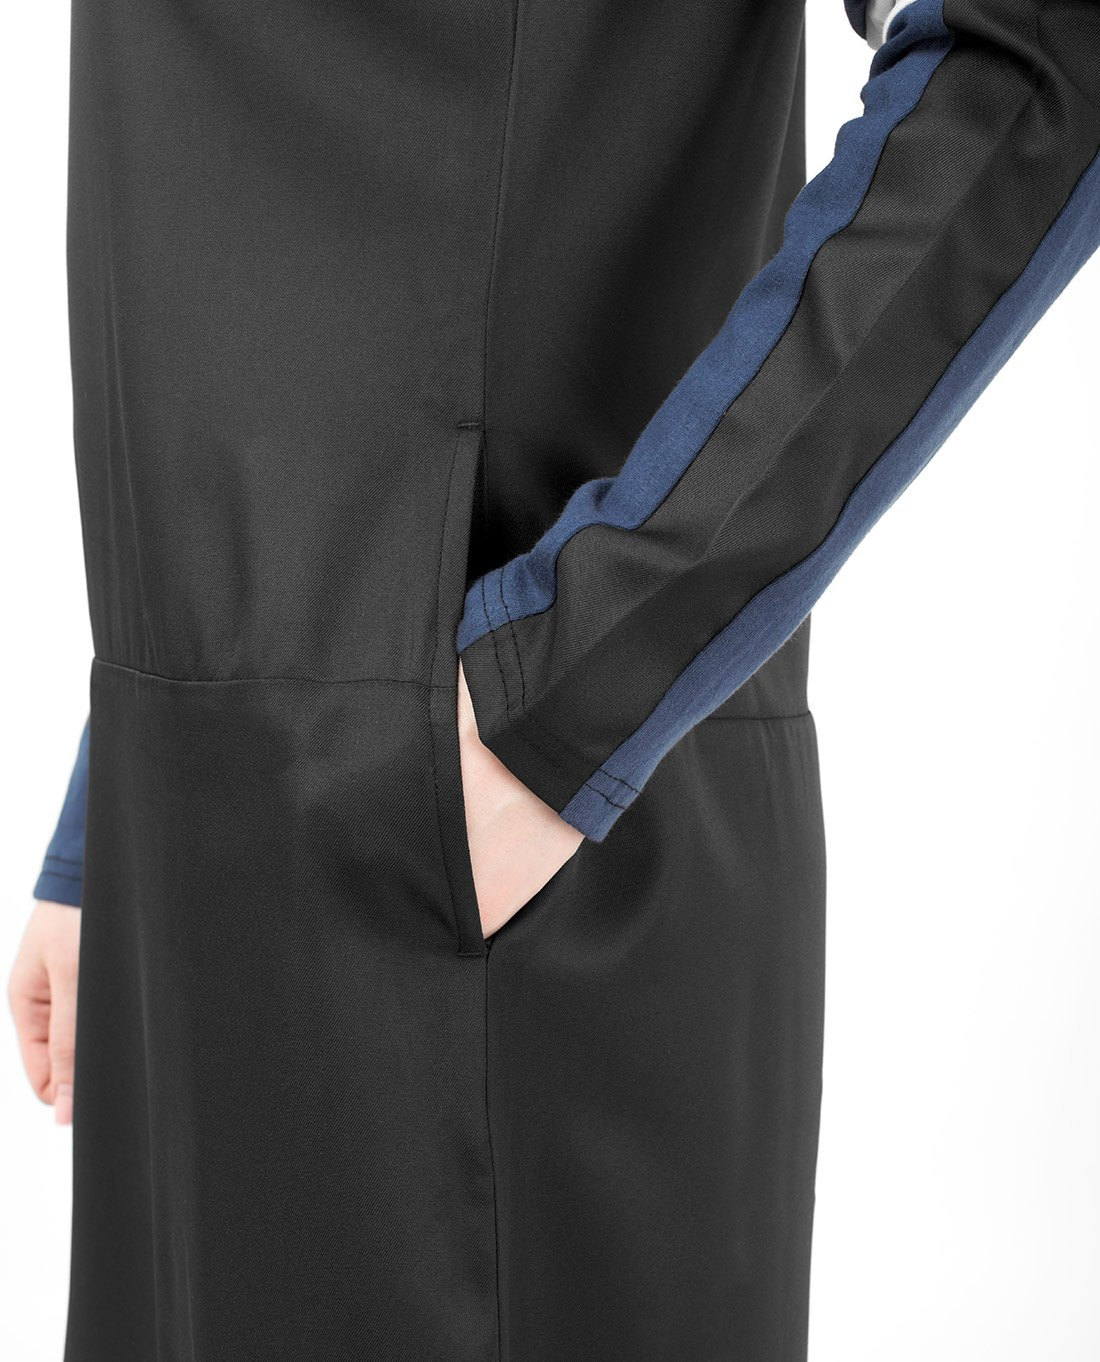 Silk Route Black Navy And White Subtle Curve Polyester Sporty Maxi Dress Jilbab Large 54 by Silk Route (Image #4)